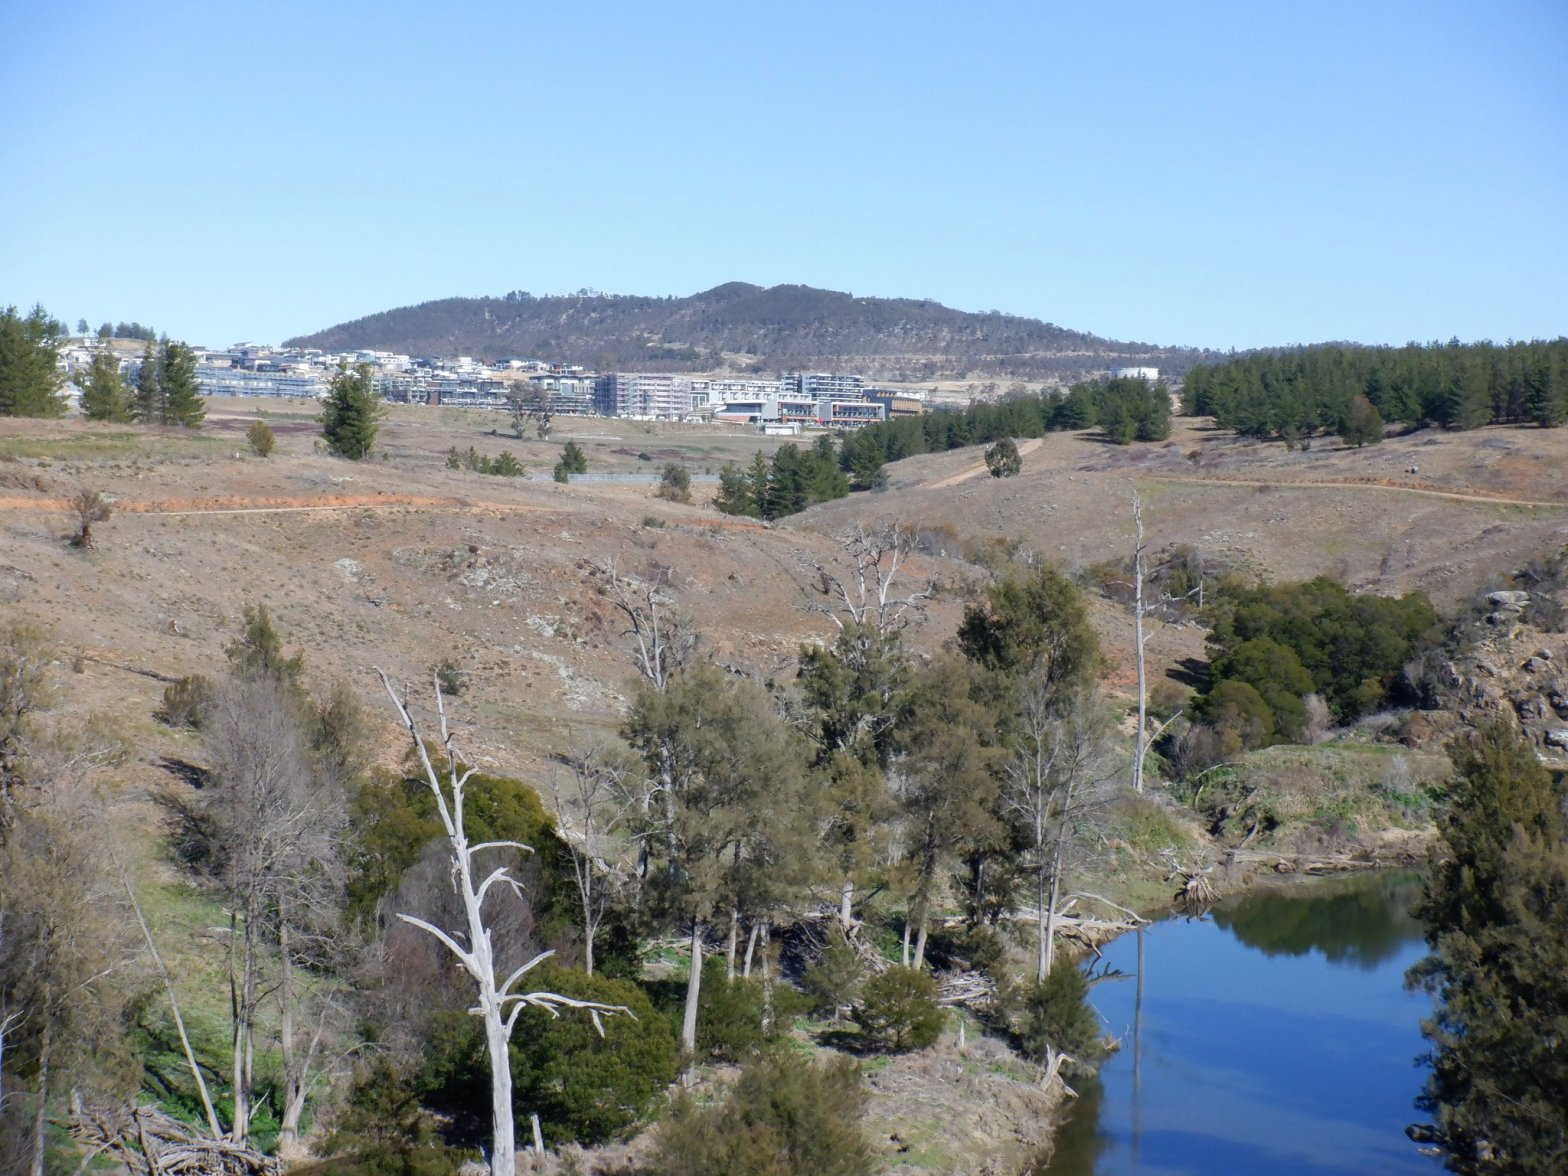 Denman Prospect from Butters Bridge, Molonglo River, Molonglo Valley, Canberra